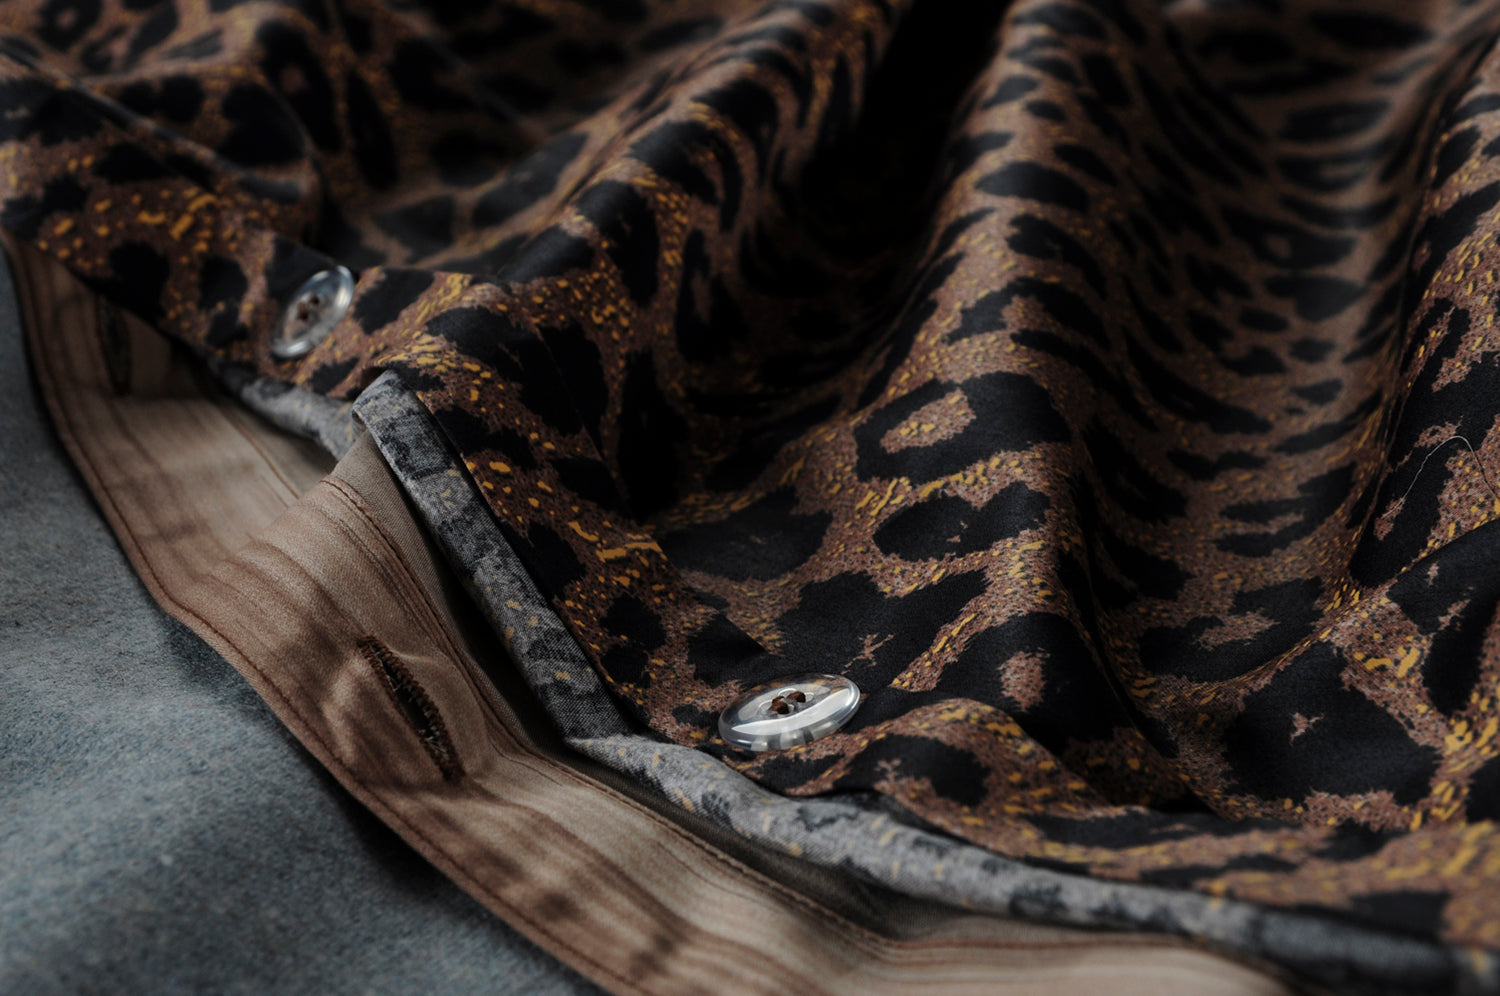 Leopard Bed Suit